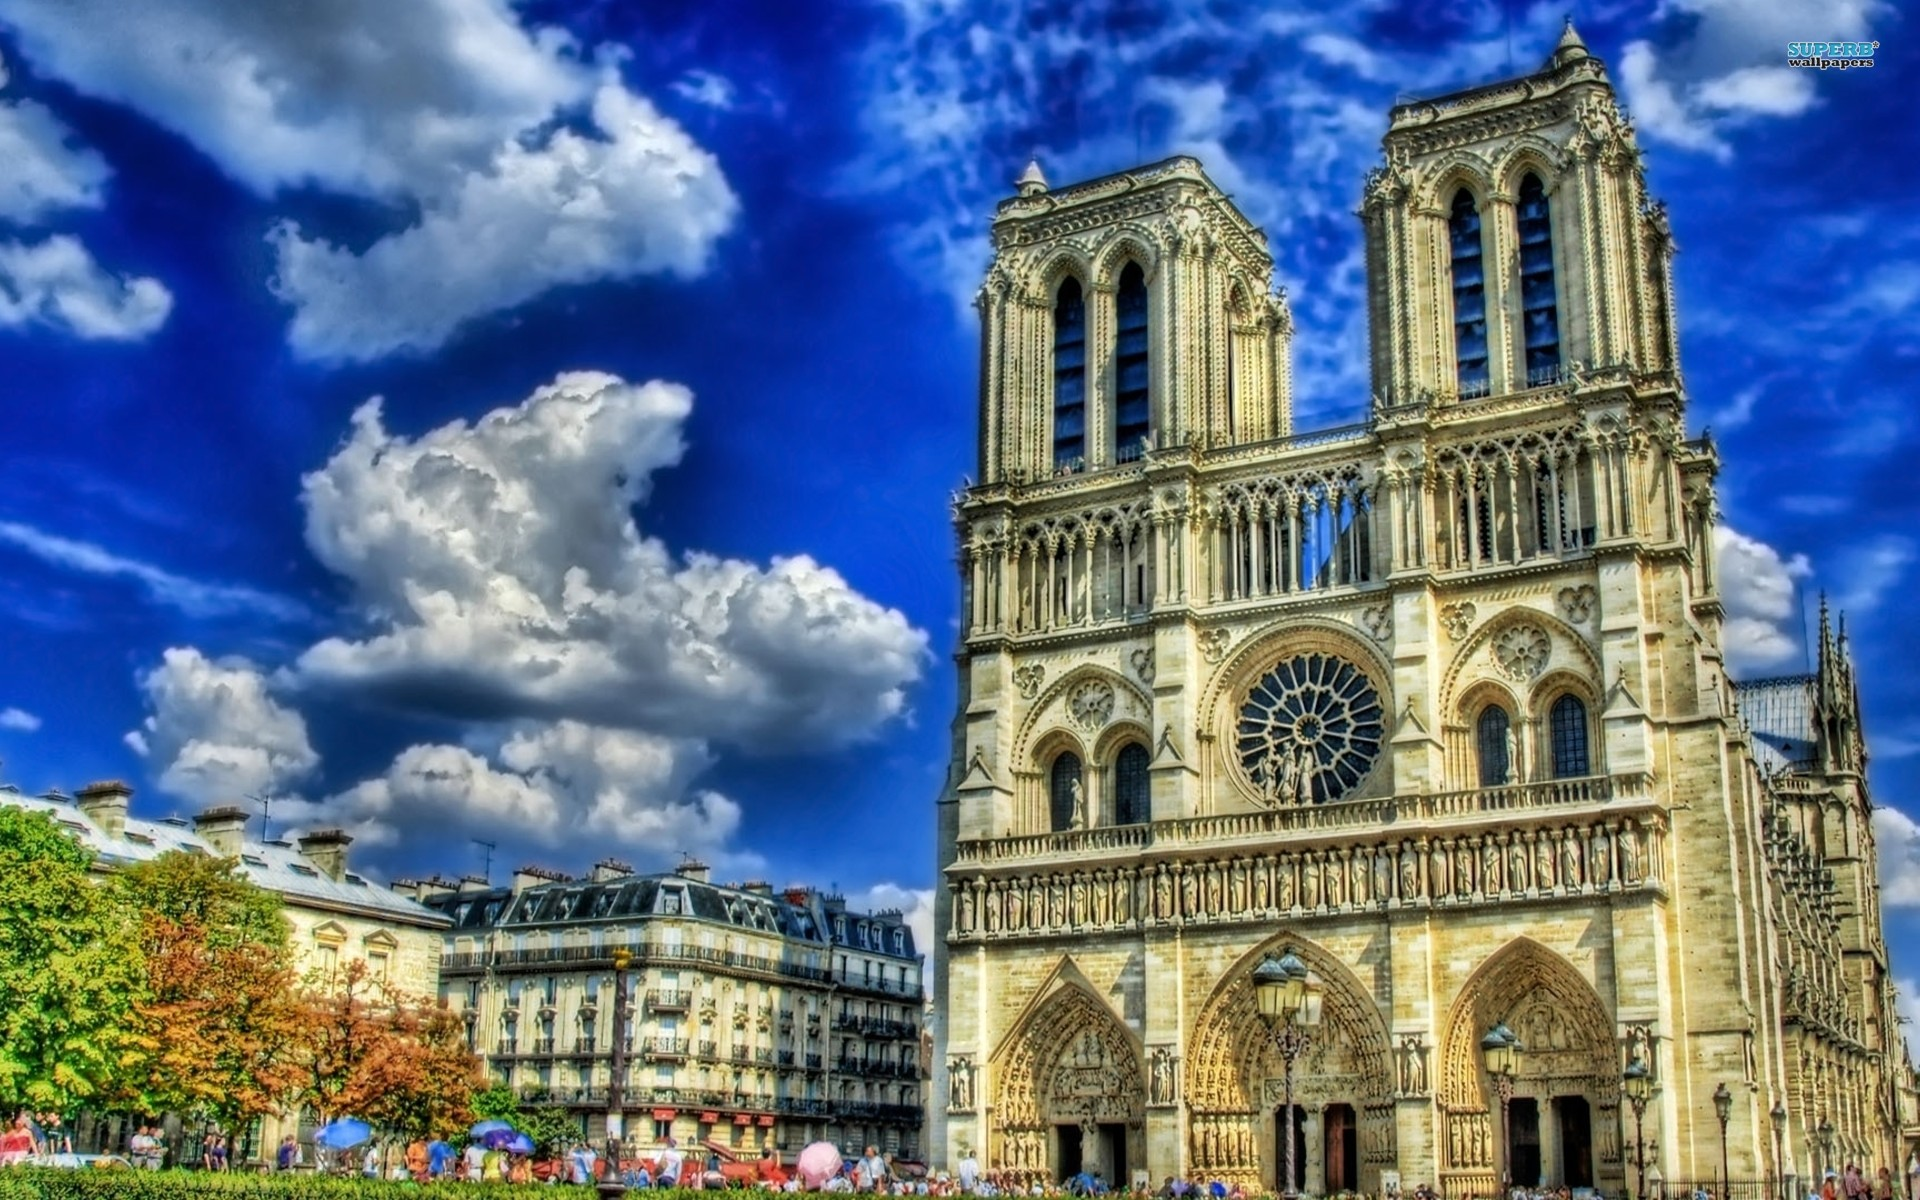 Notre Dame Wallpaper for iPhone | HD Wallpapers | Pinterest | Notre dame  and Wallpaper